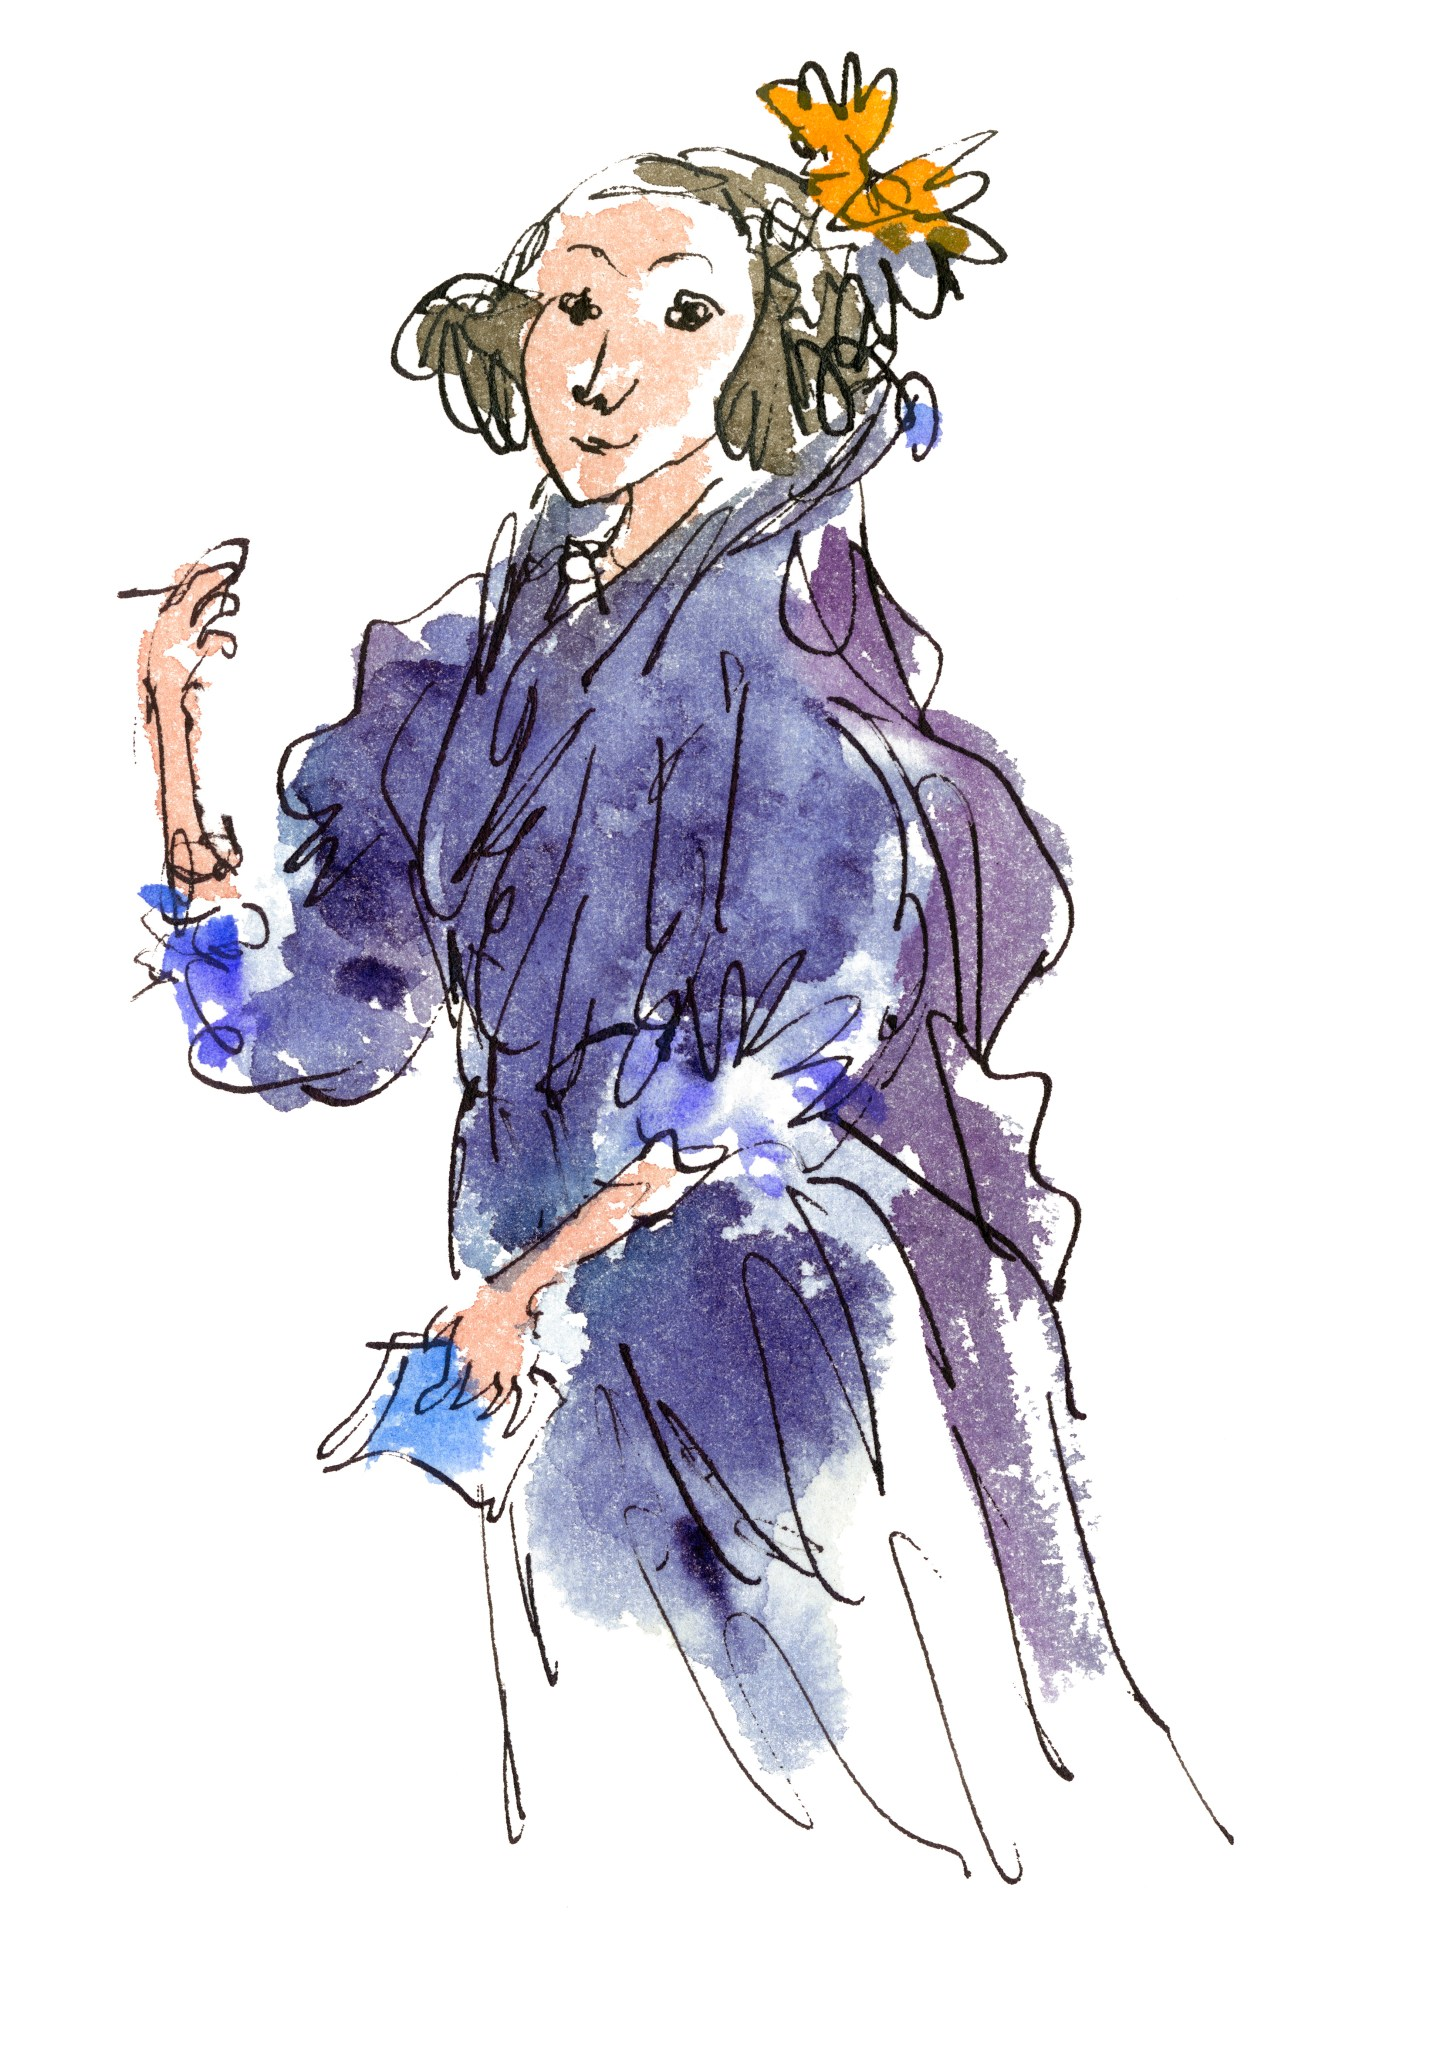 Brand New Art Work by Quentin Blake to Adorn Science Museum Walls